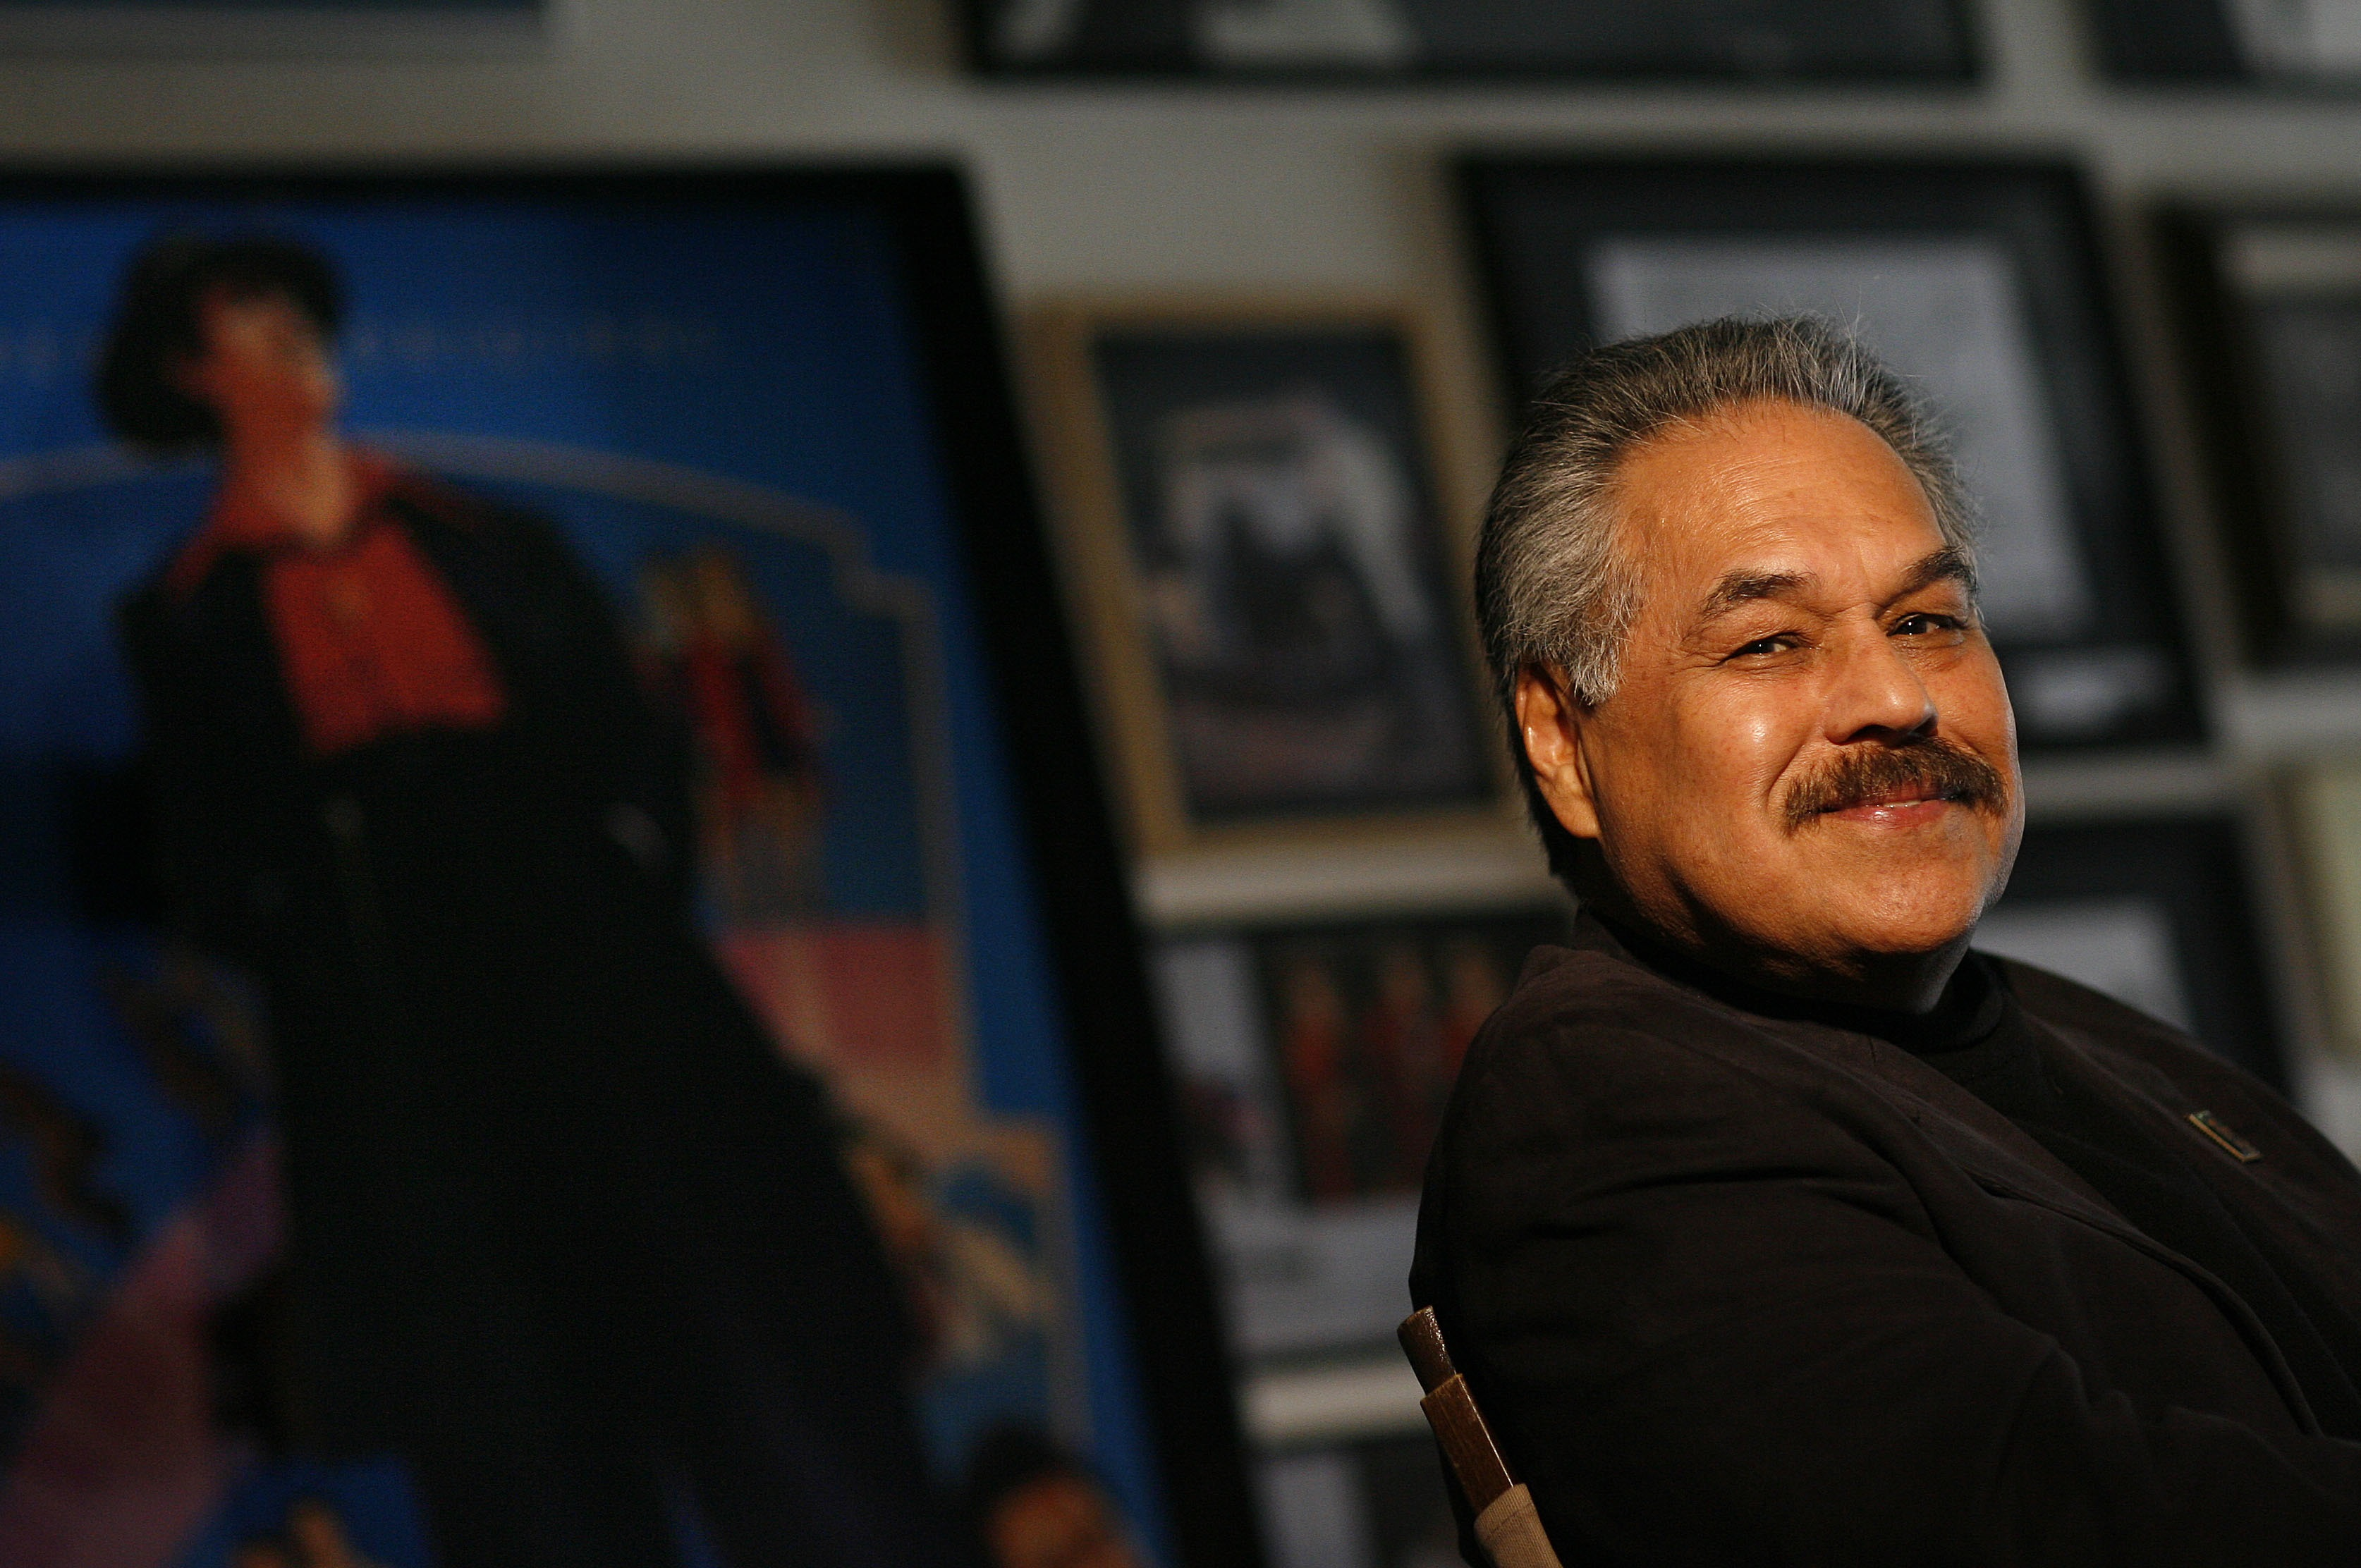 A LETTER FROM LUIS VALDEZ TO OUR ESTEEMED DONORS AND SUPPORTERS OF EL TEATRO CAMPESINO, WHATEVER YOU CAN DONATE WILL BE DEEPLY APPRECIATED.